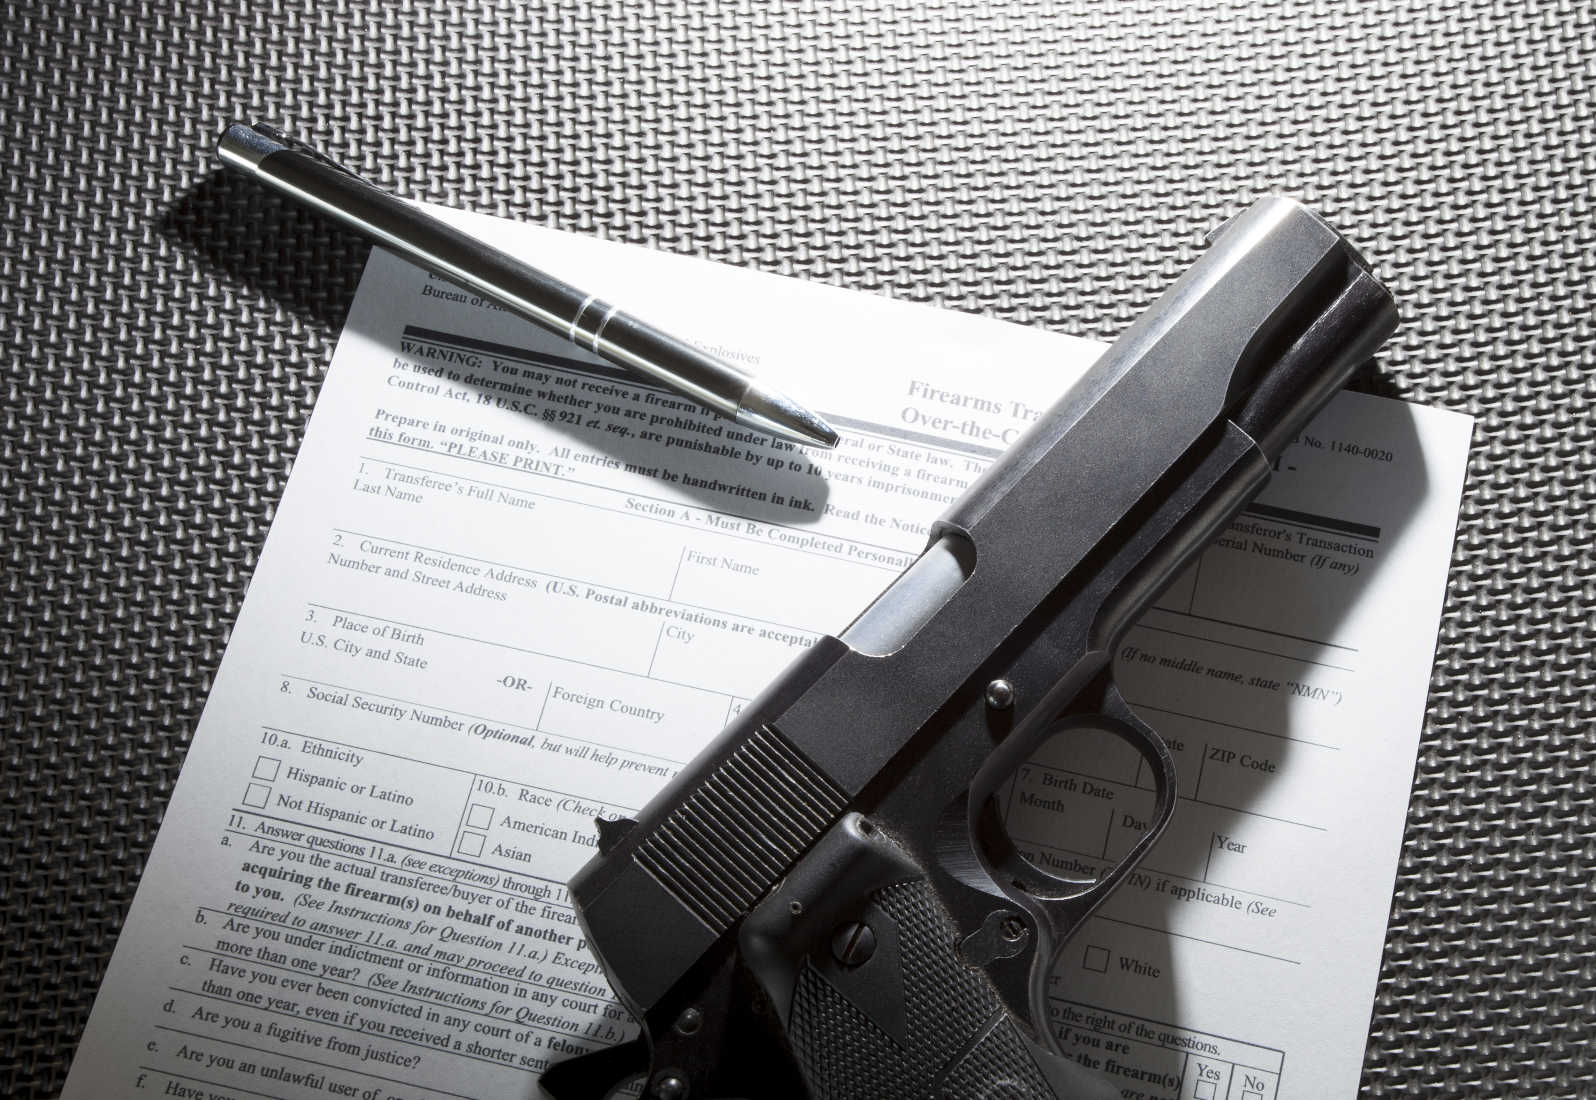 Ask the Expert: How to Find Out What Gun Records the Govt. Keeps on You